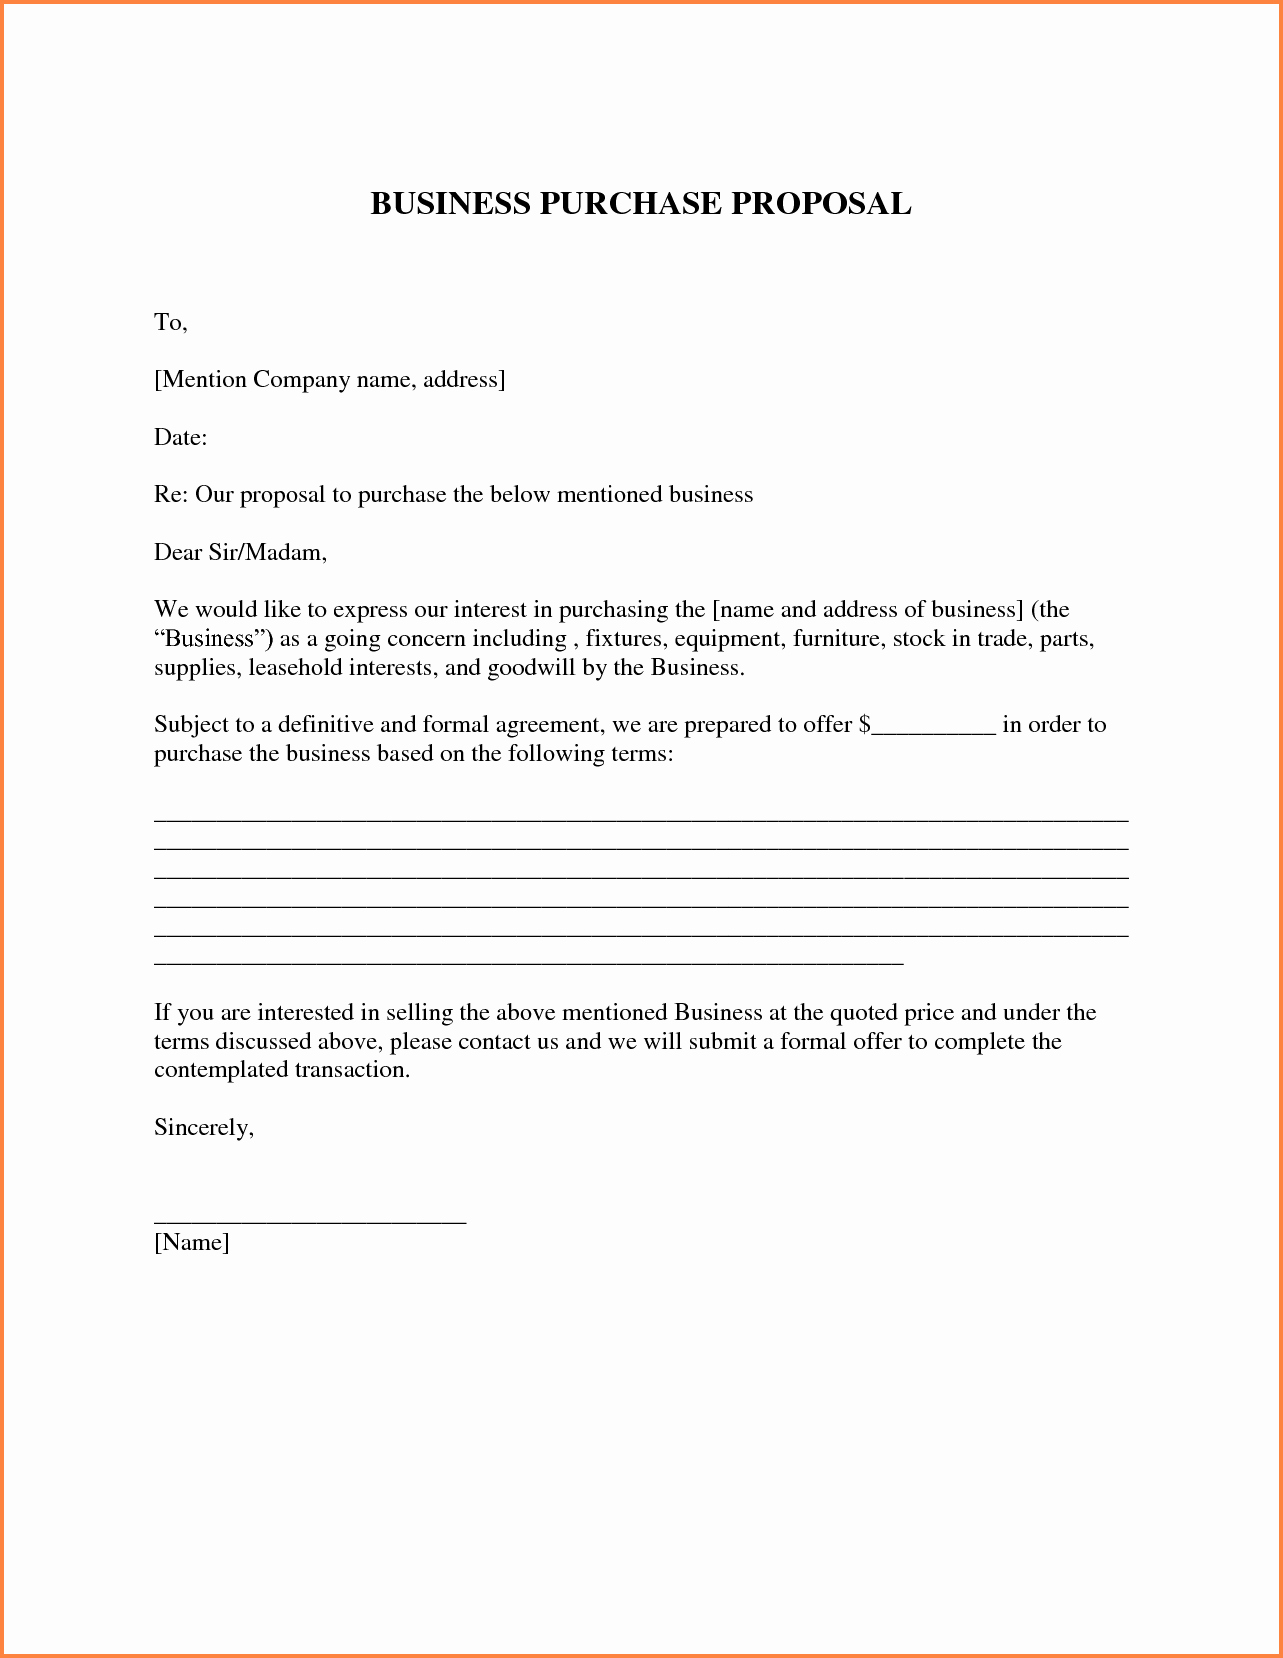 Equipment Purchase Proposal Template Fresh 7 Business Purchase Proposal